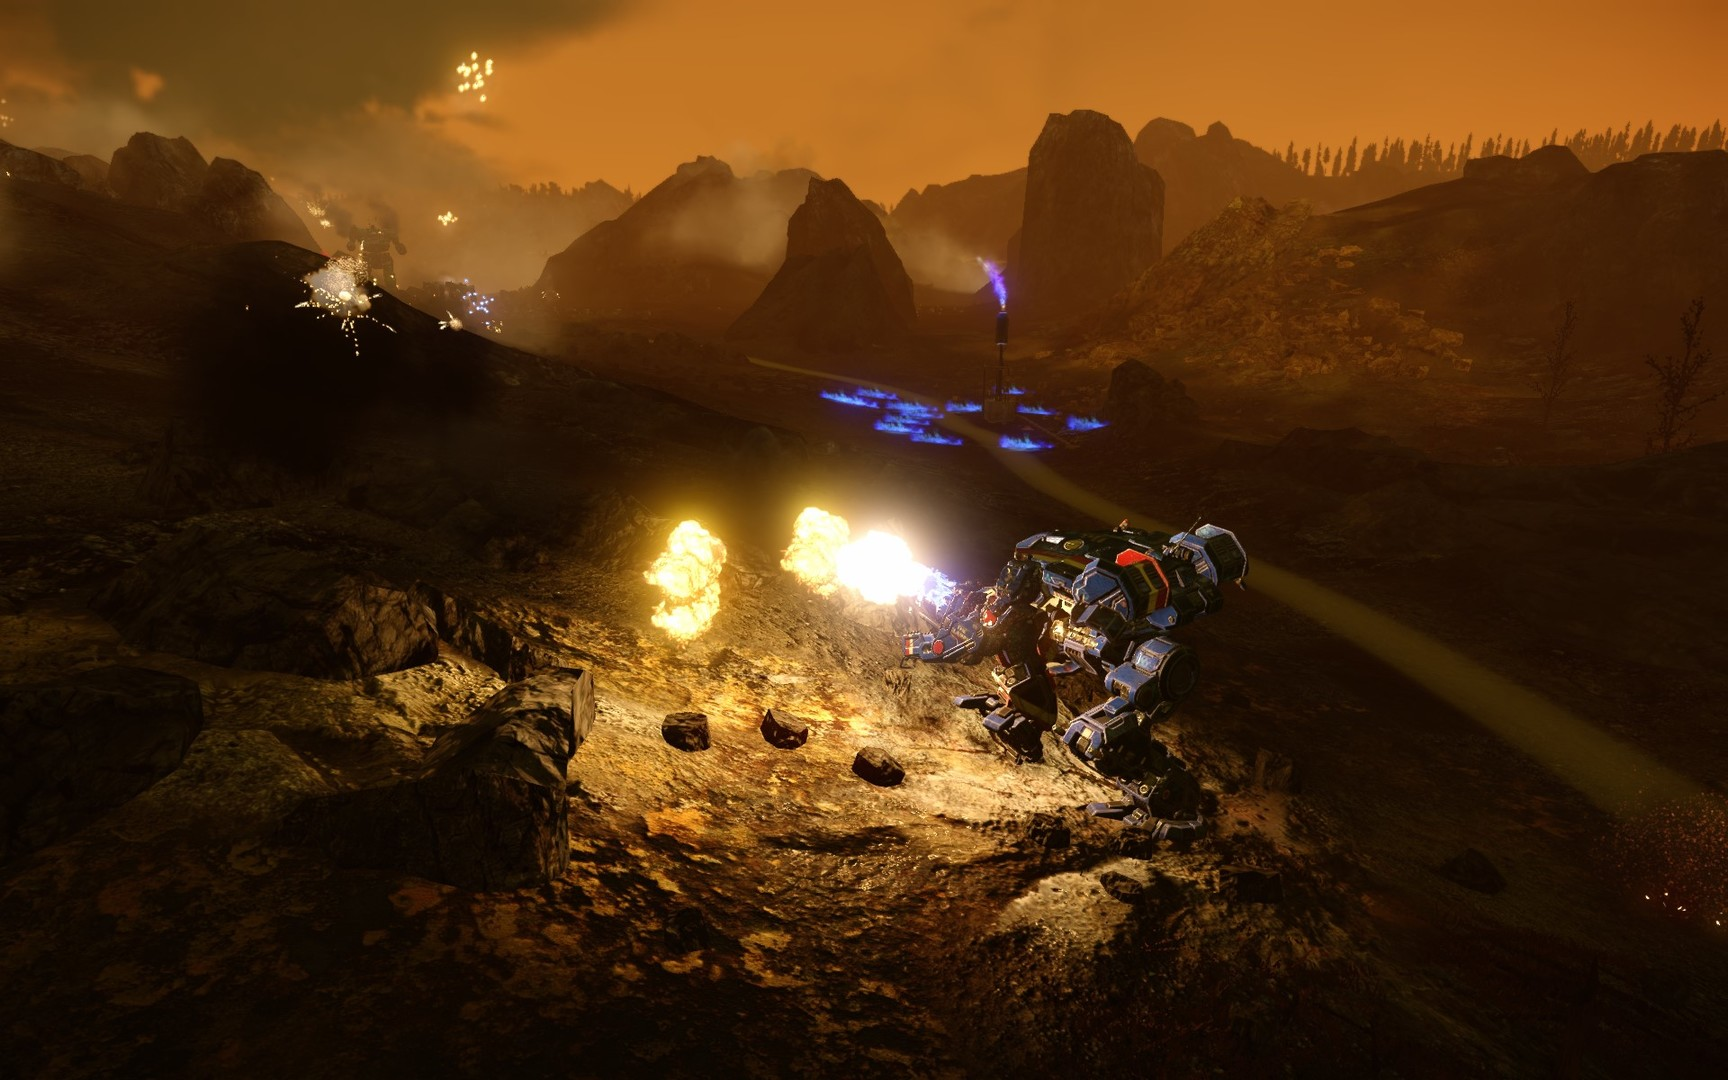 MechWarrior Online Gameplay Screenshot 3